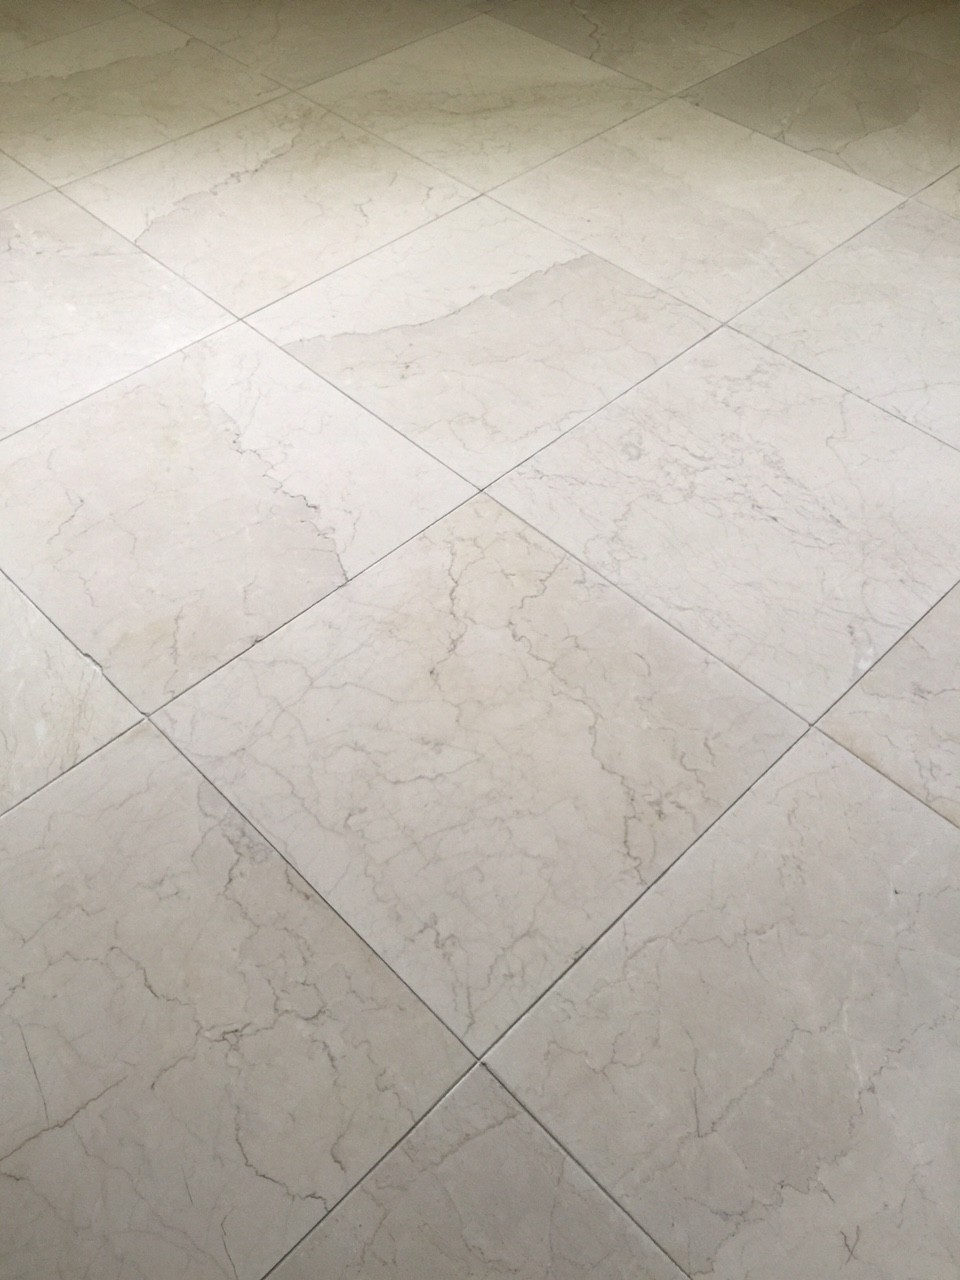 Professional Tile and Grout Cleaning - Port Charlotte, FL - Grout ...